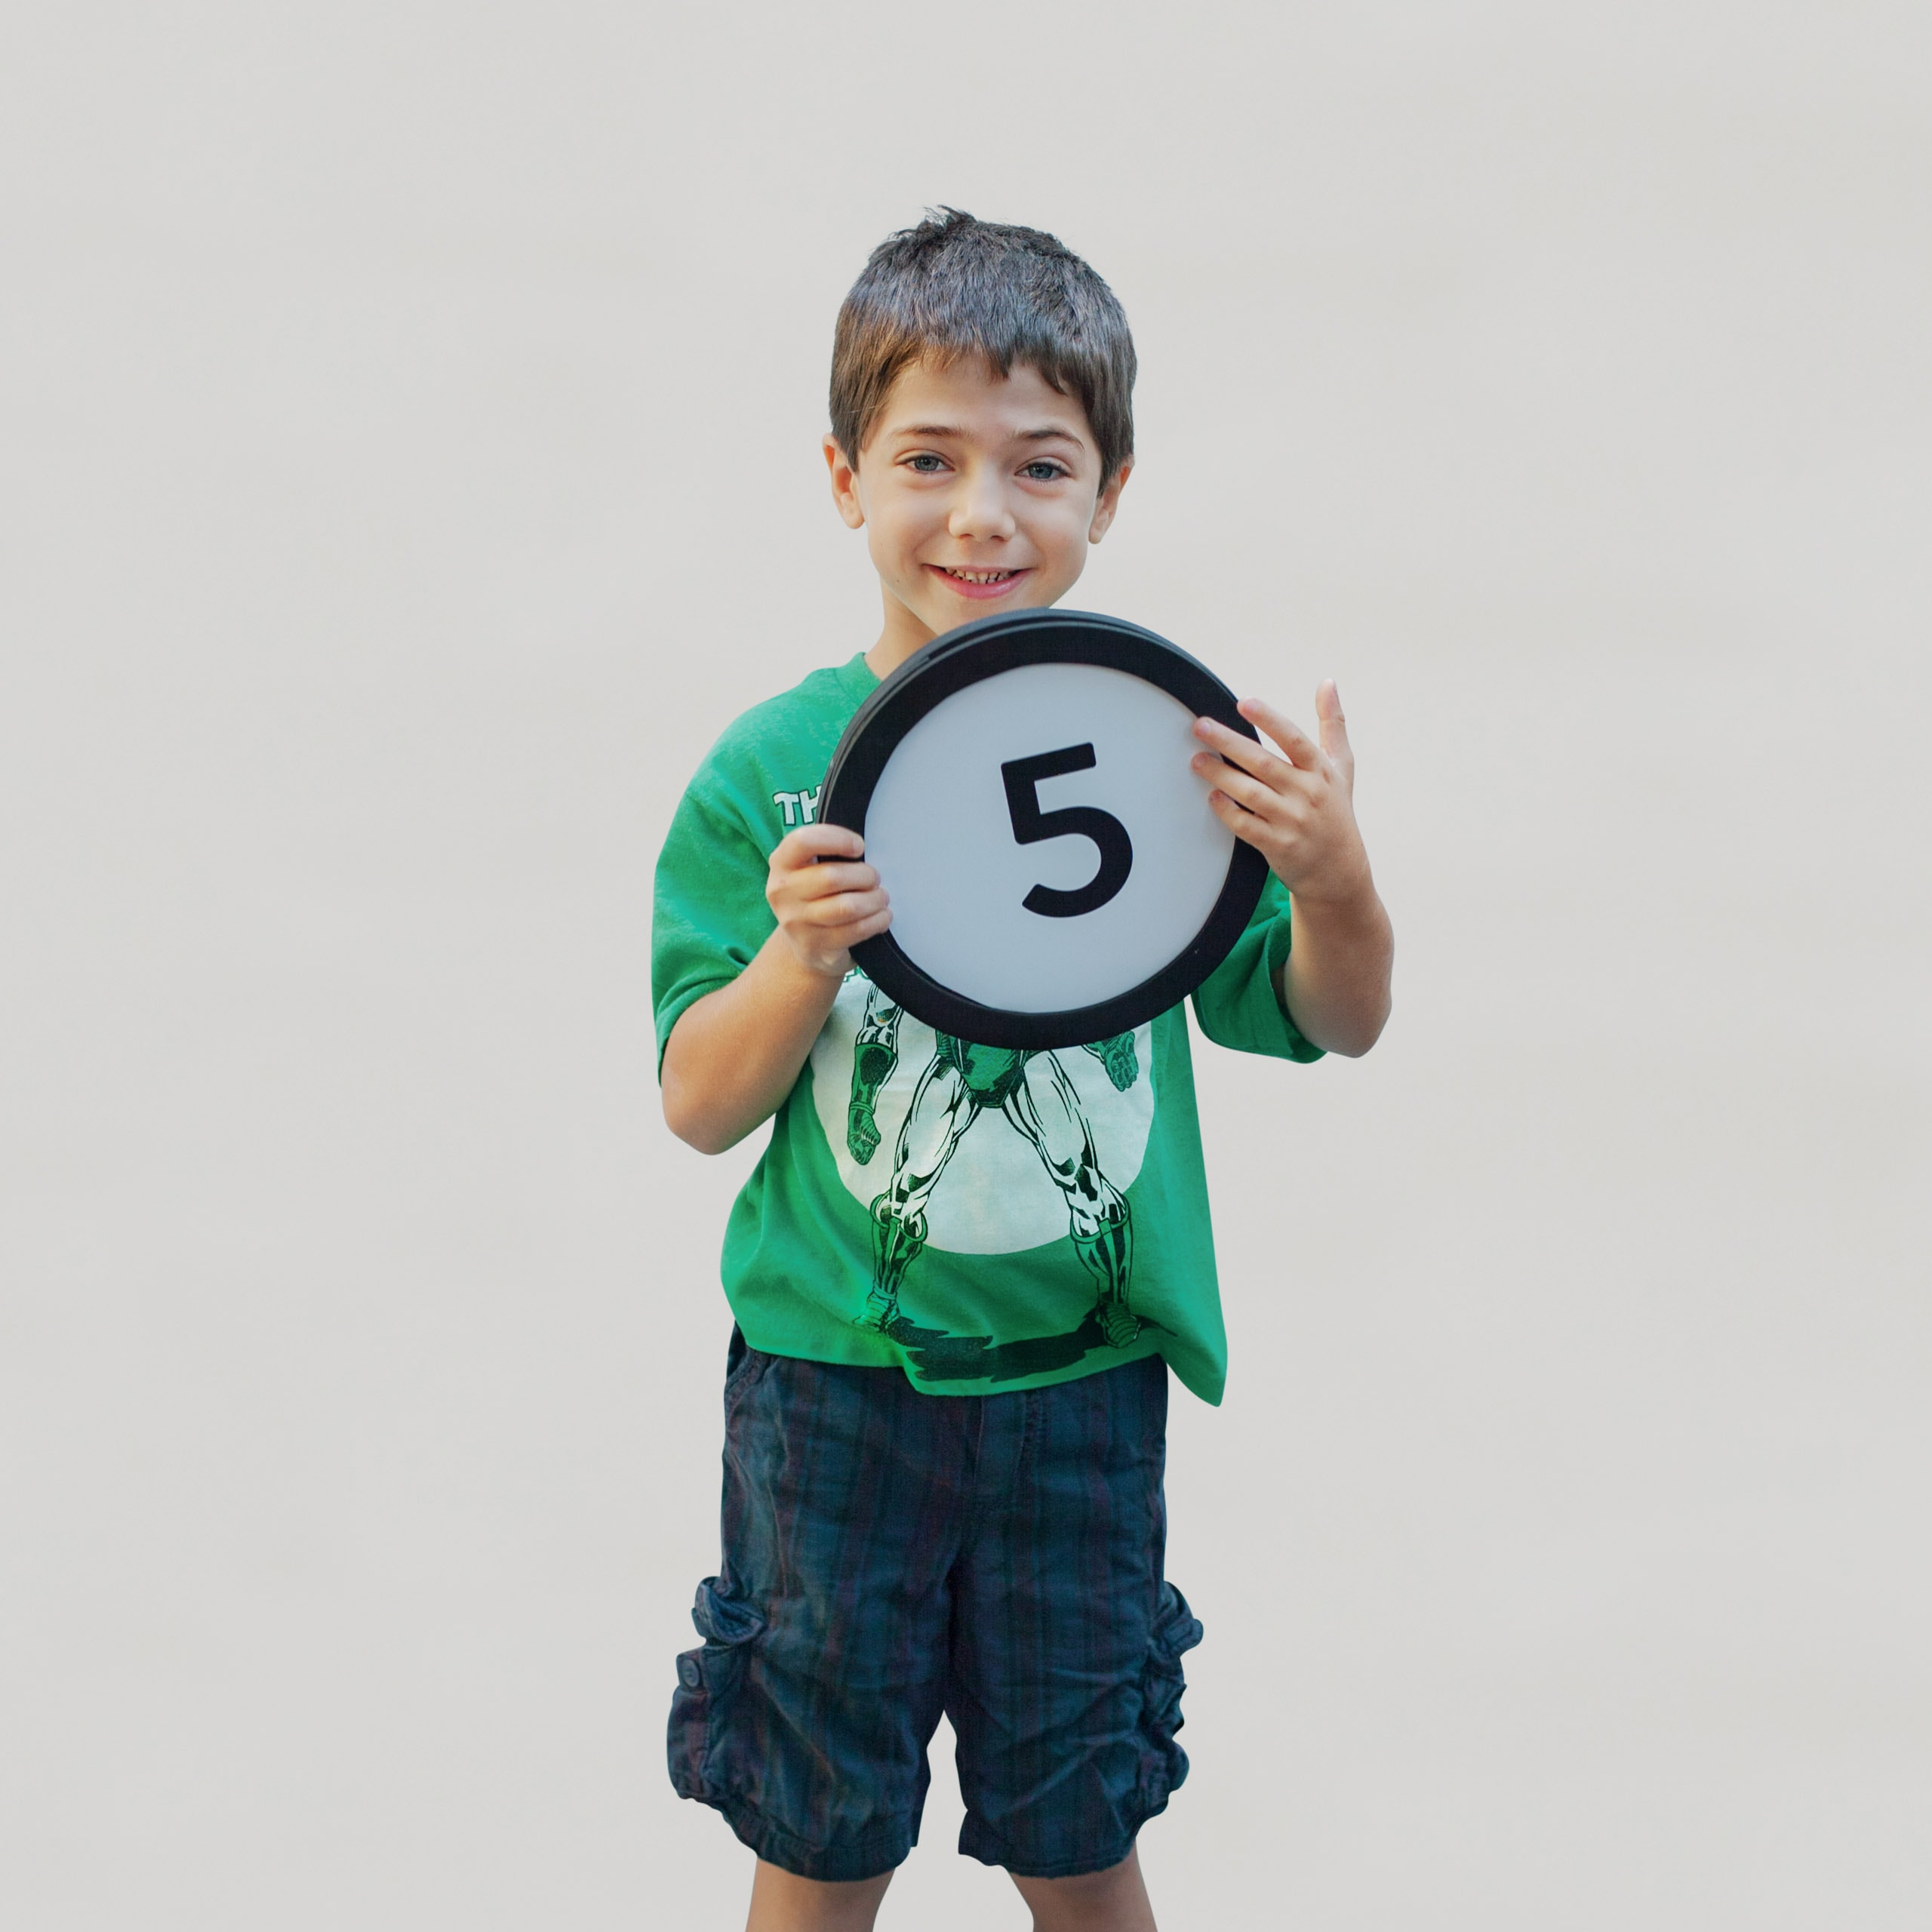 5 year old boy smiles and holds a token with the number 5 on it. This digital image is part of the 1 to Infinity portrait photography series by Danny Goldfield.